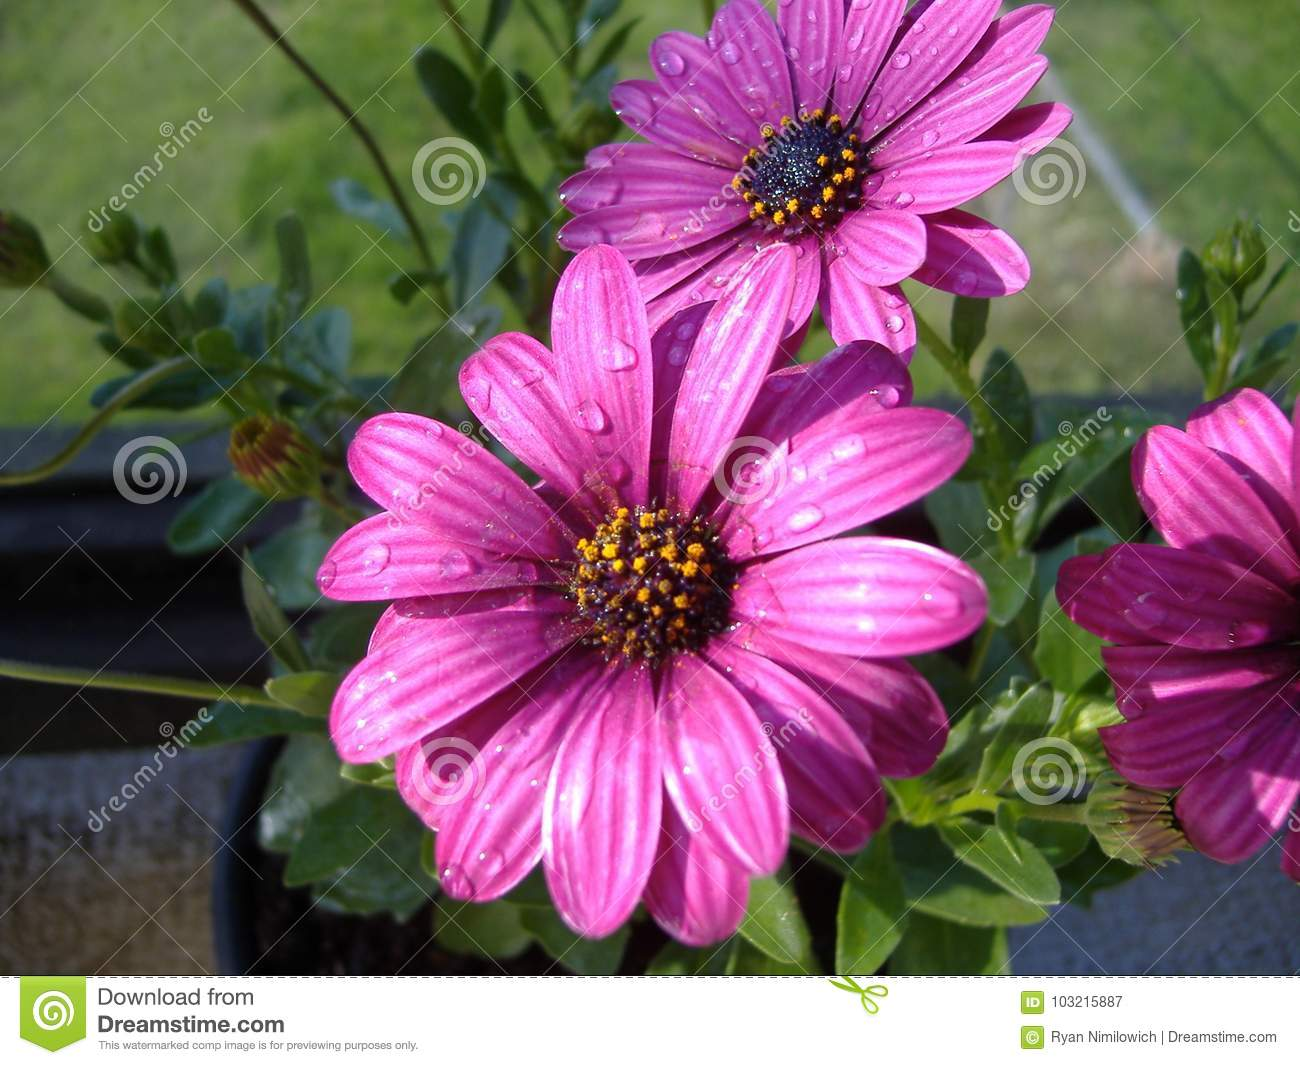 Purple daisy flowers stock image image of still purple 103215887 download purple daisy flowers stock image image of still purple 103215887 izmirmasajfo